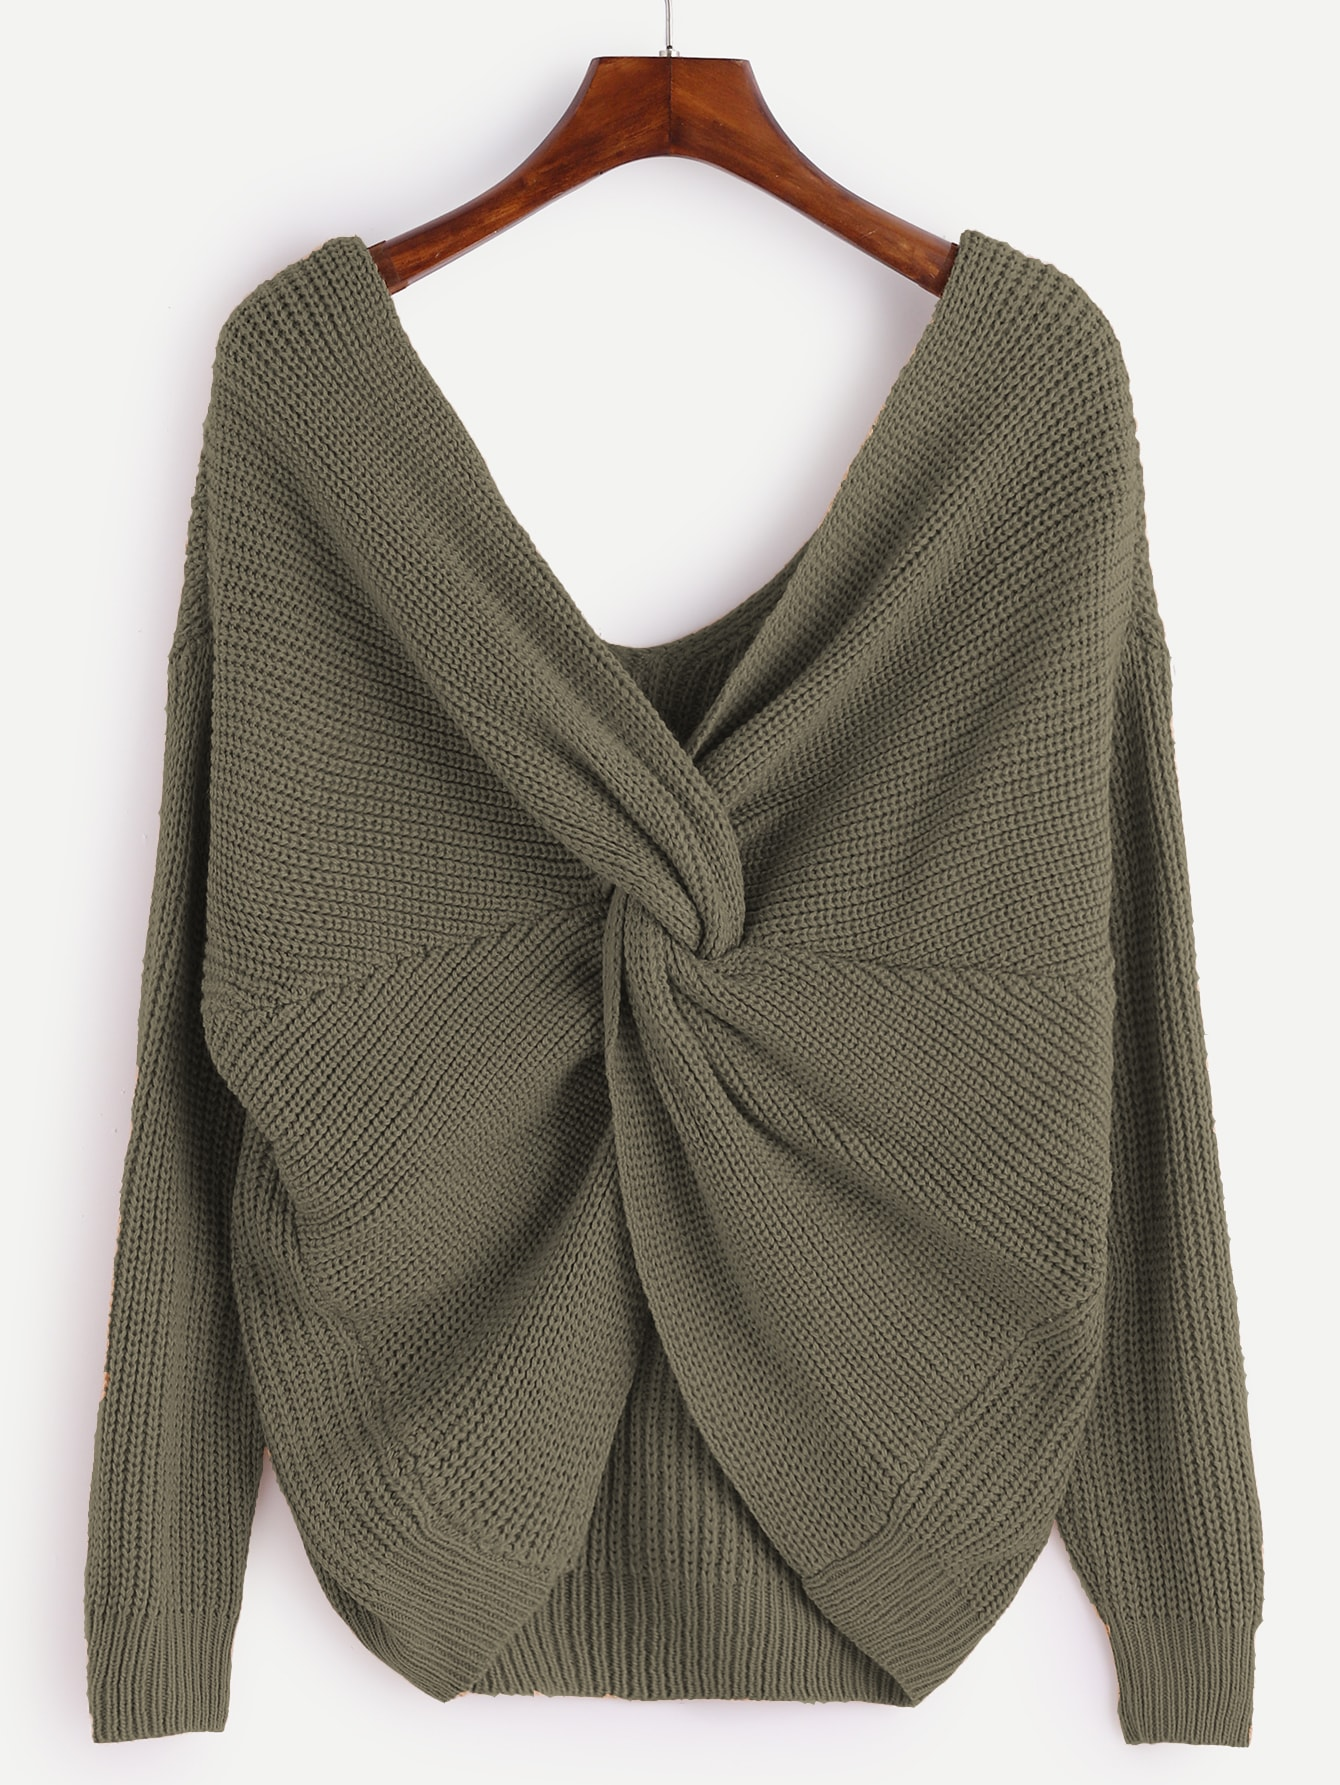 Army Green V Neck Knot Sweater cougar 530m army green